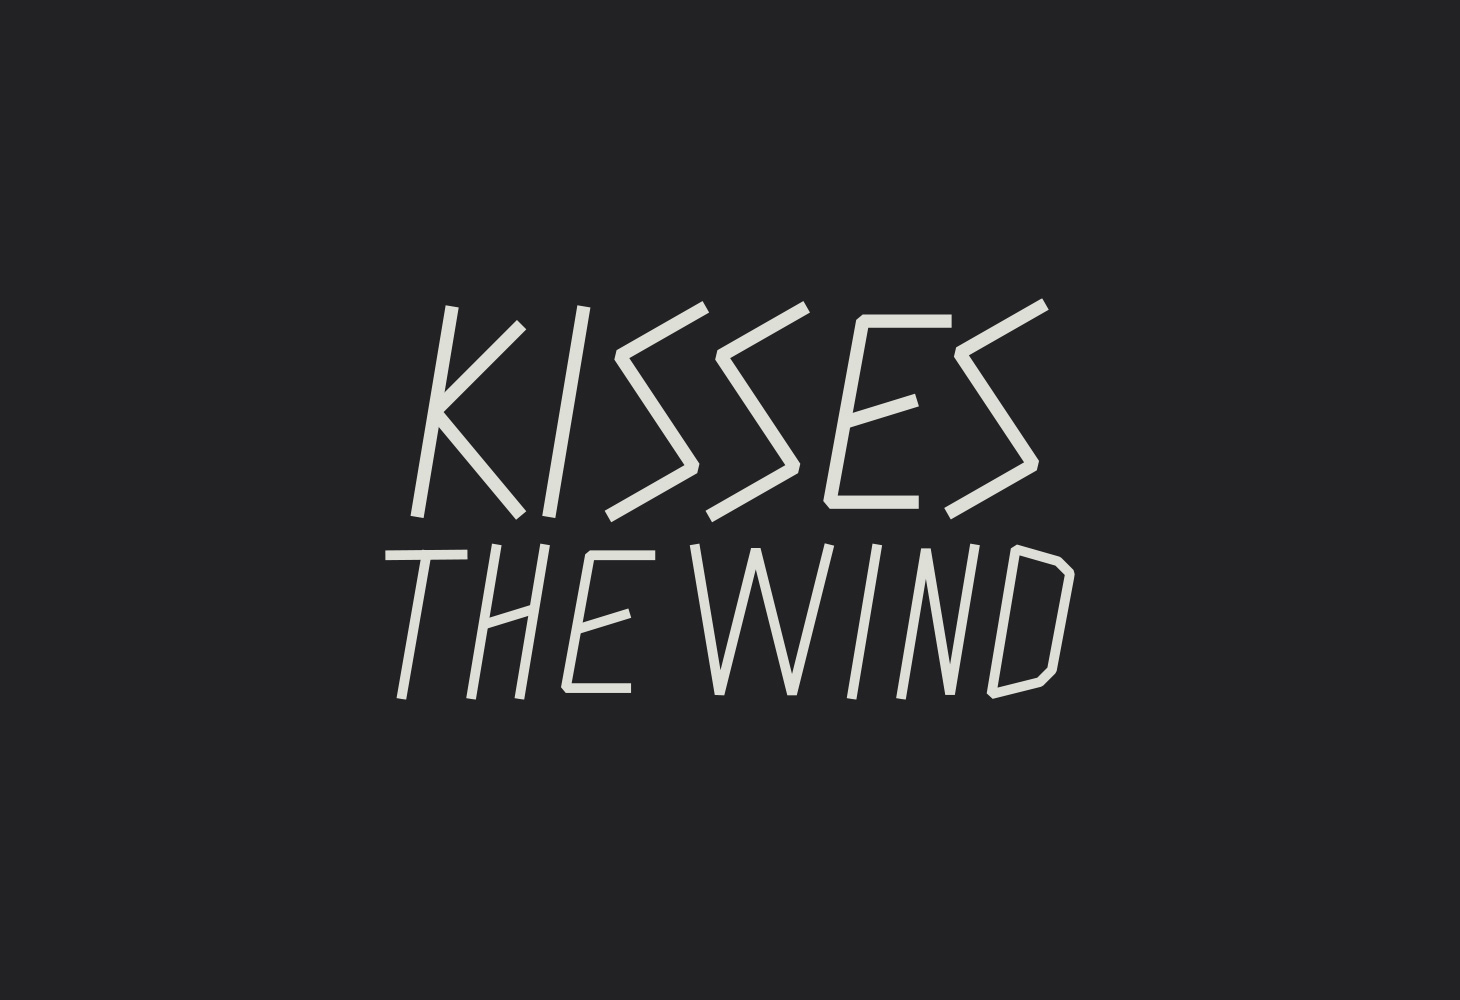 Kisses the Wind - Typography